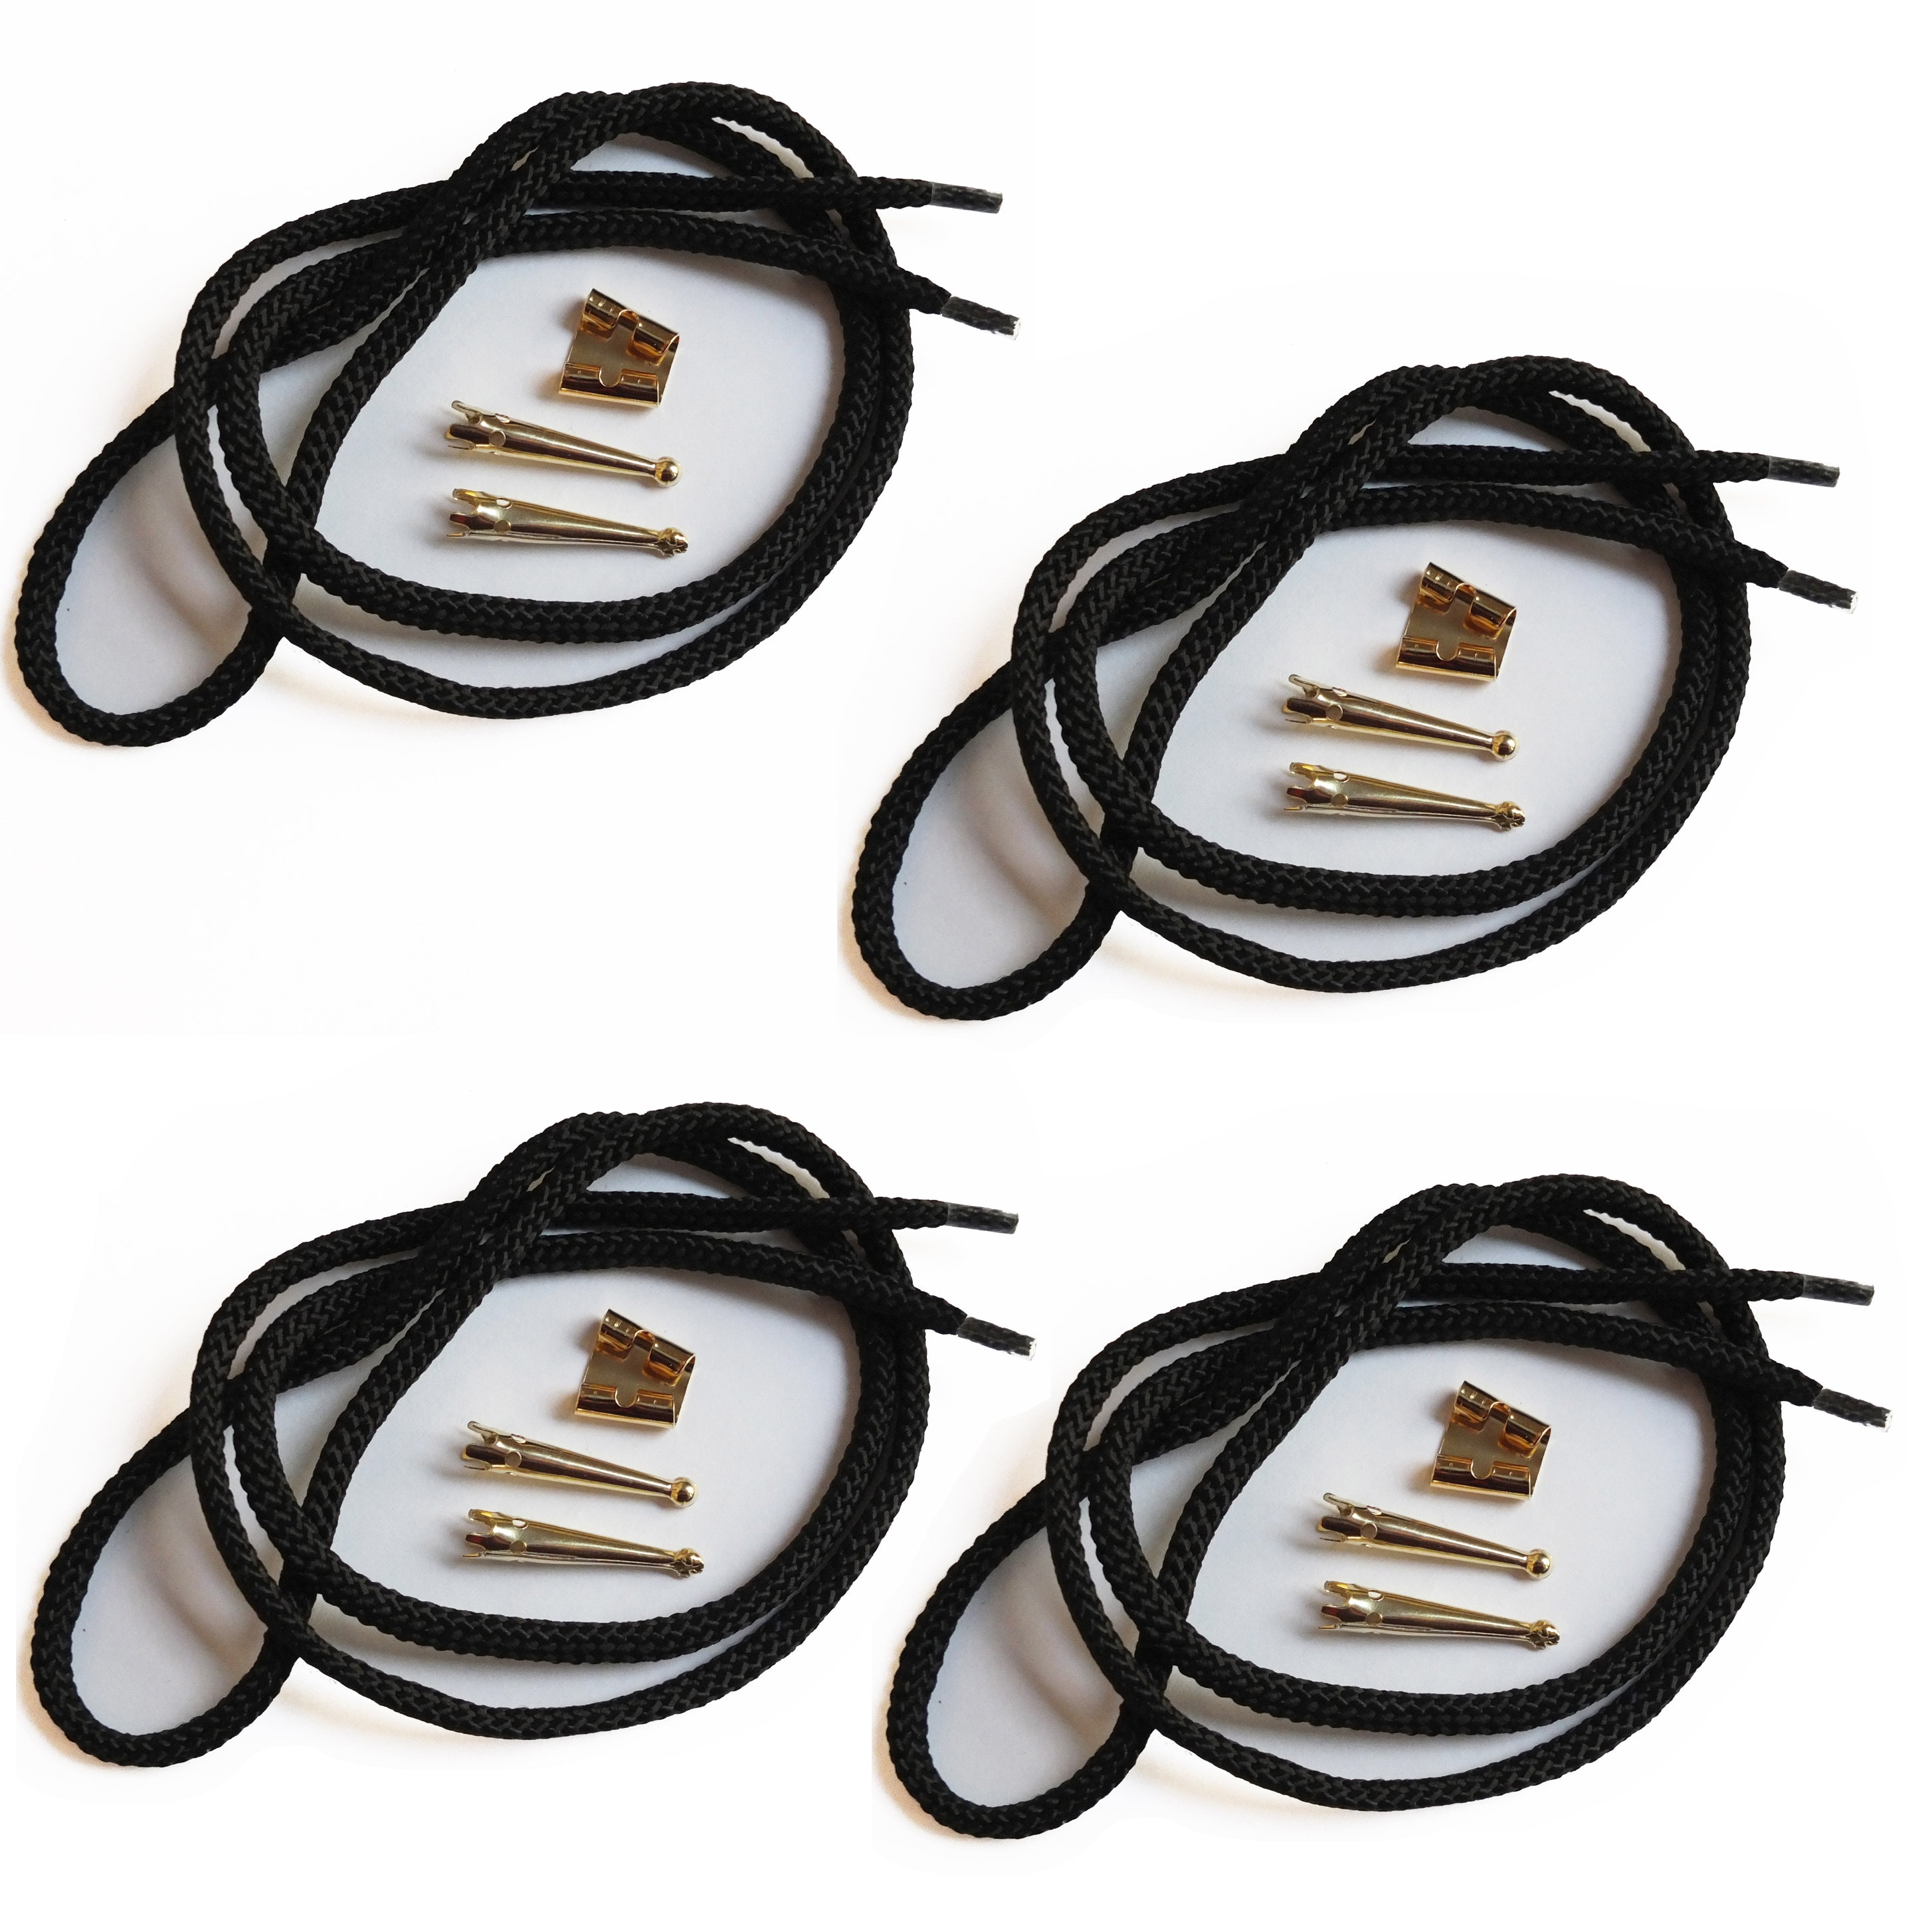 Blank Bolo Tie Parts Kit Standard Slide Smooth Tips Black Cord DIY Gold Tone Supplies for 4 ties